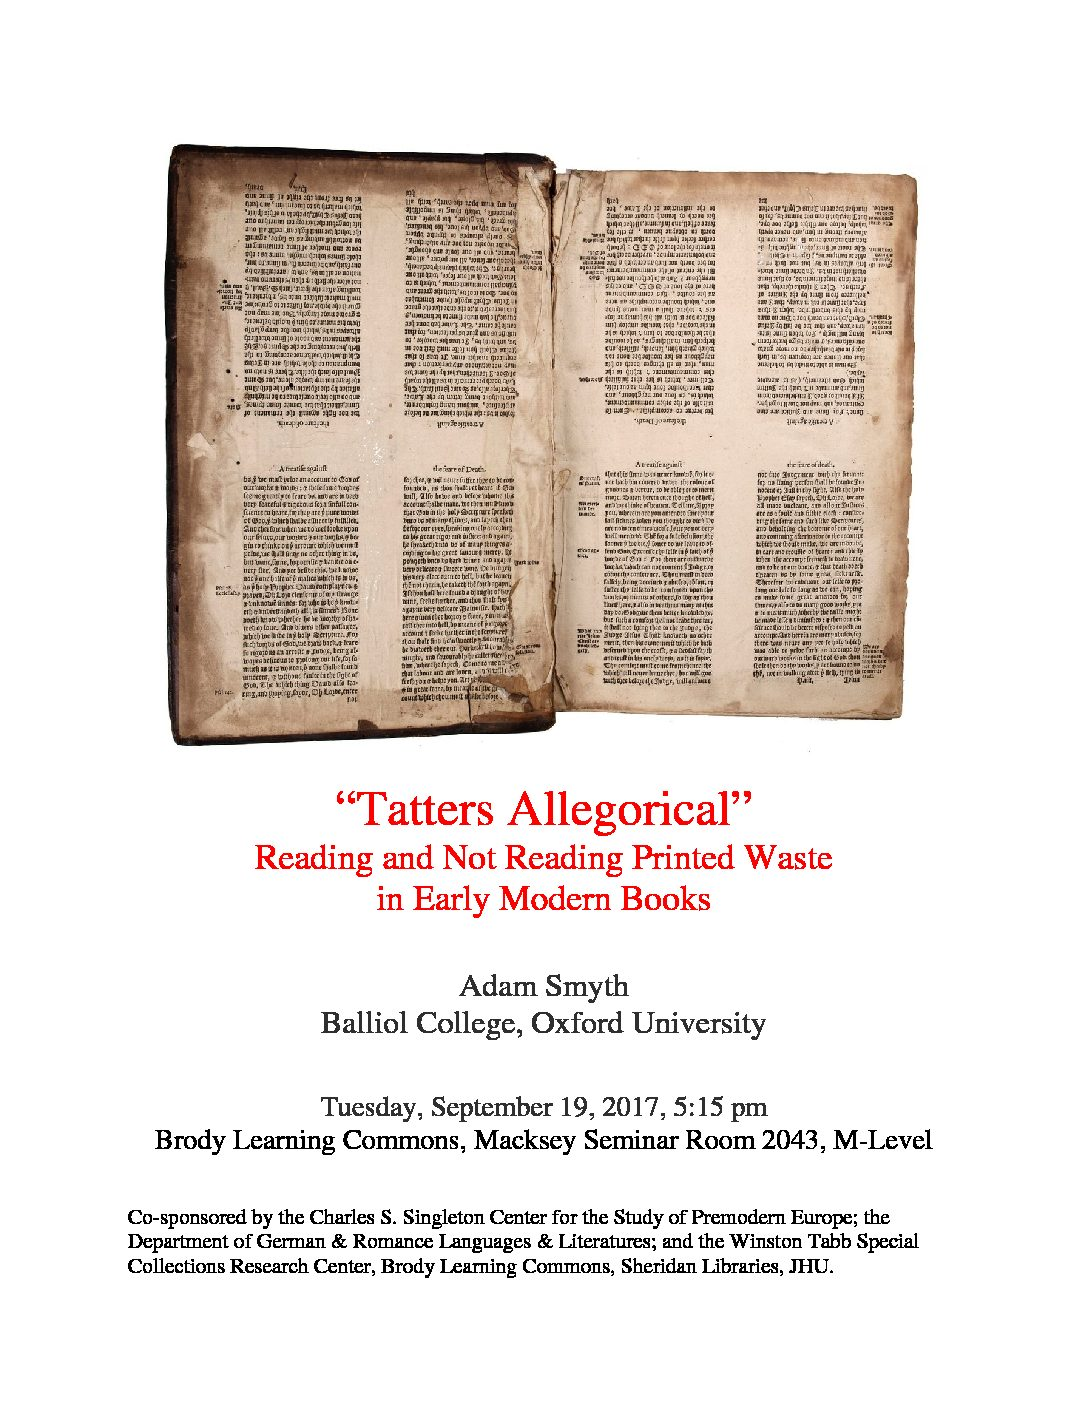 "Upcoming event: ""Tatters Allegorical"" Reading and Not Reading Printed Waste in Early Modern Books, Adam Smyth"